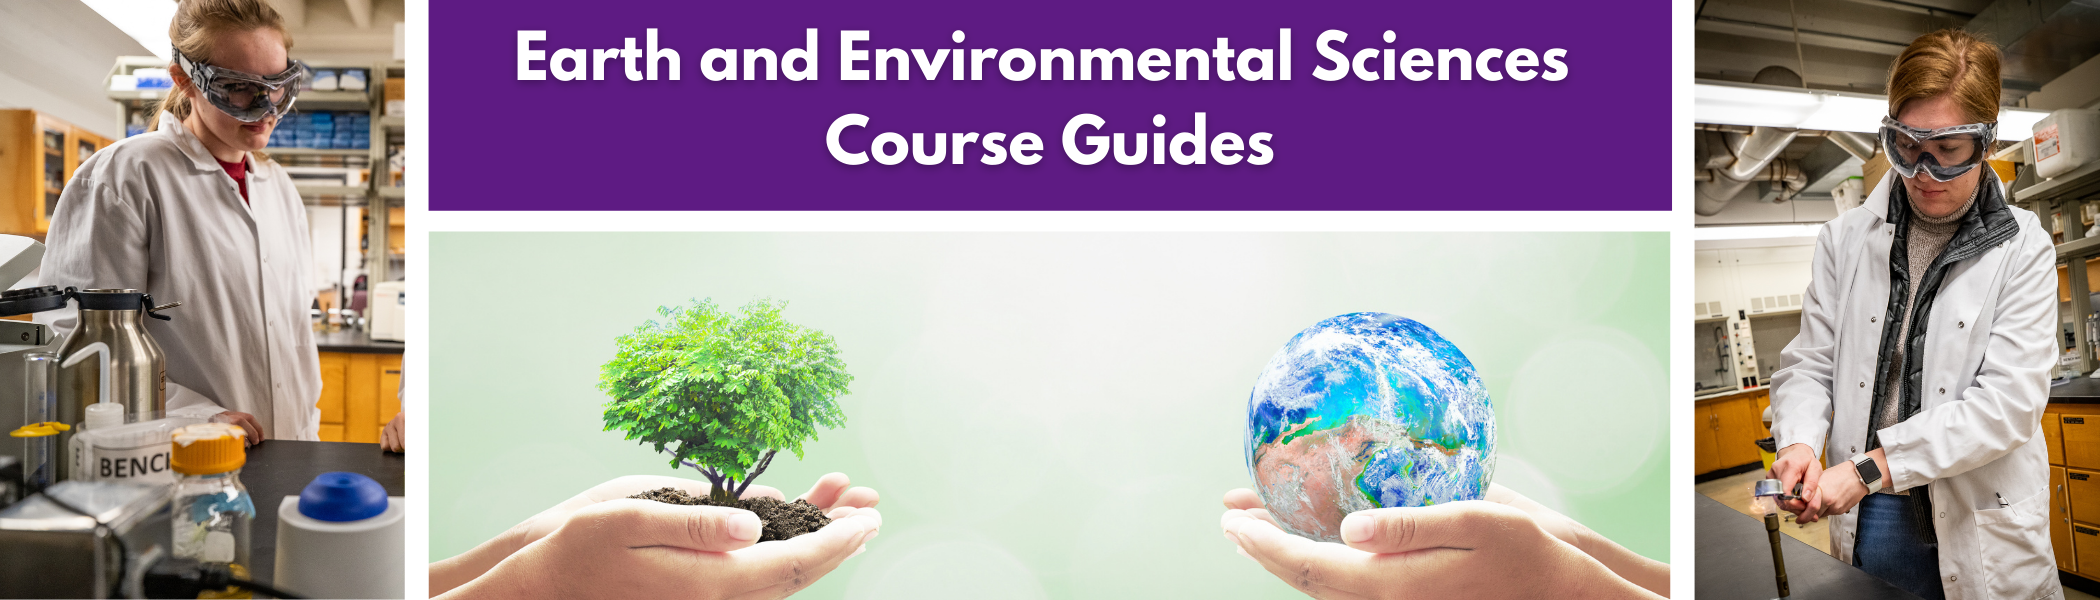 Earth and Environmental Sciences Course Guides